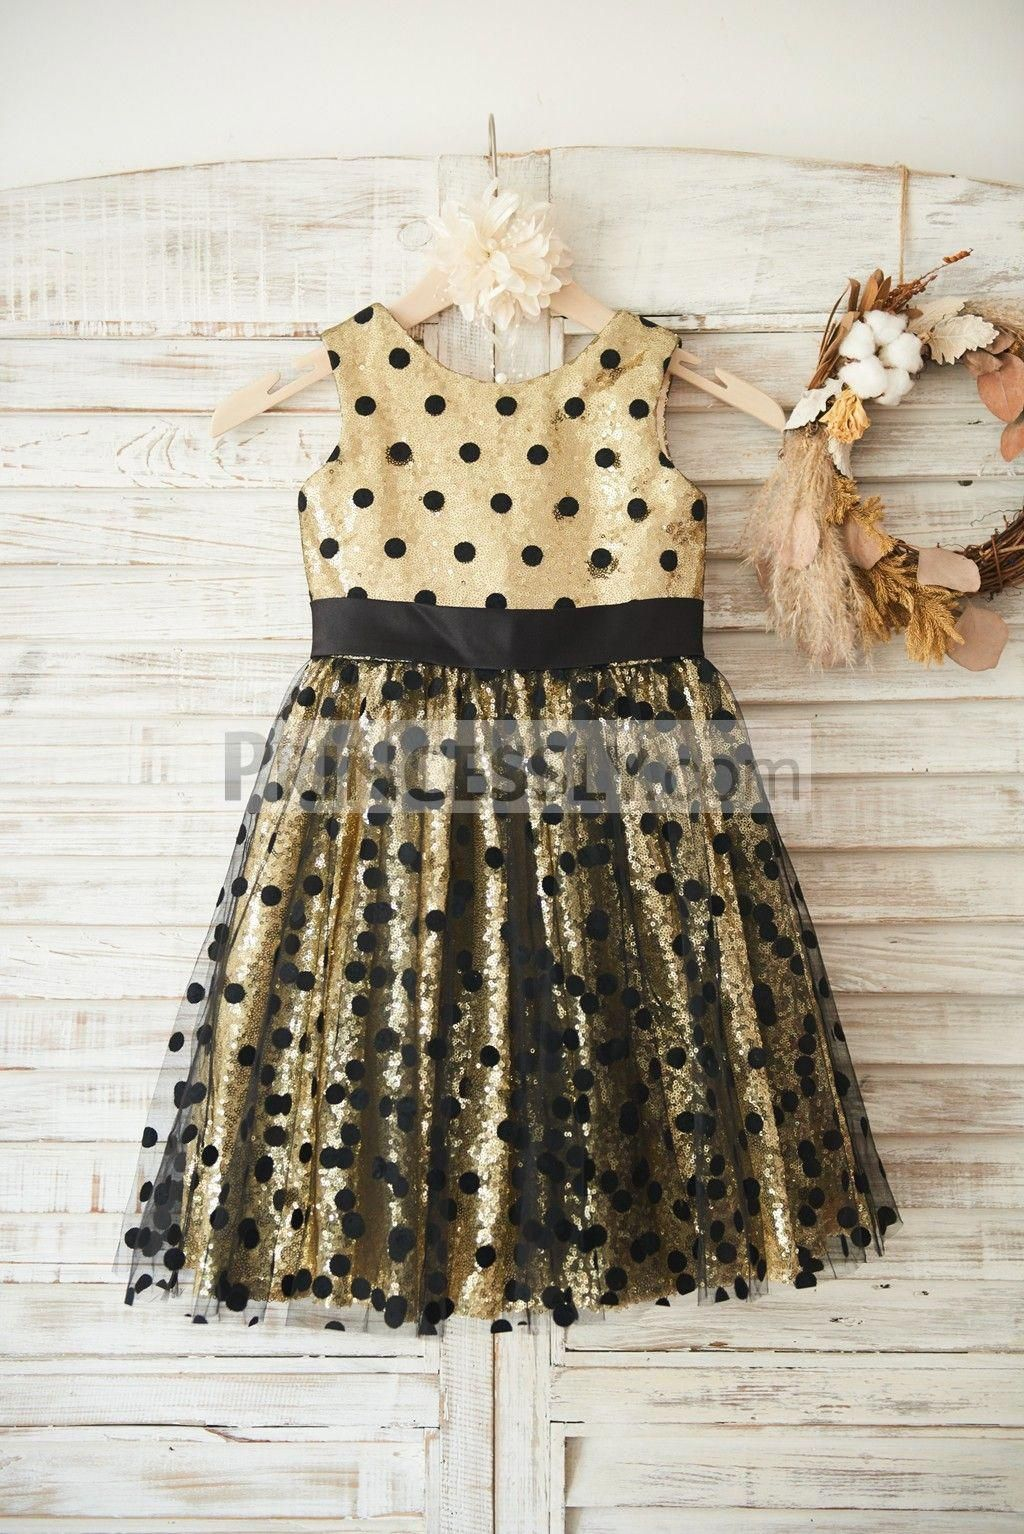 a40d4538f8e Princessly.com-K1003494-Gold Sequin Black Polka Dot Tulle Wedding Flower  Girl Dress with Big Bow-31  weddingflowers